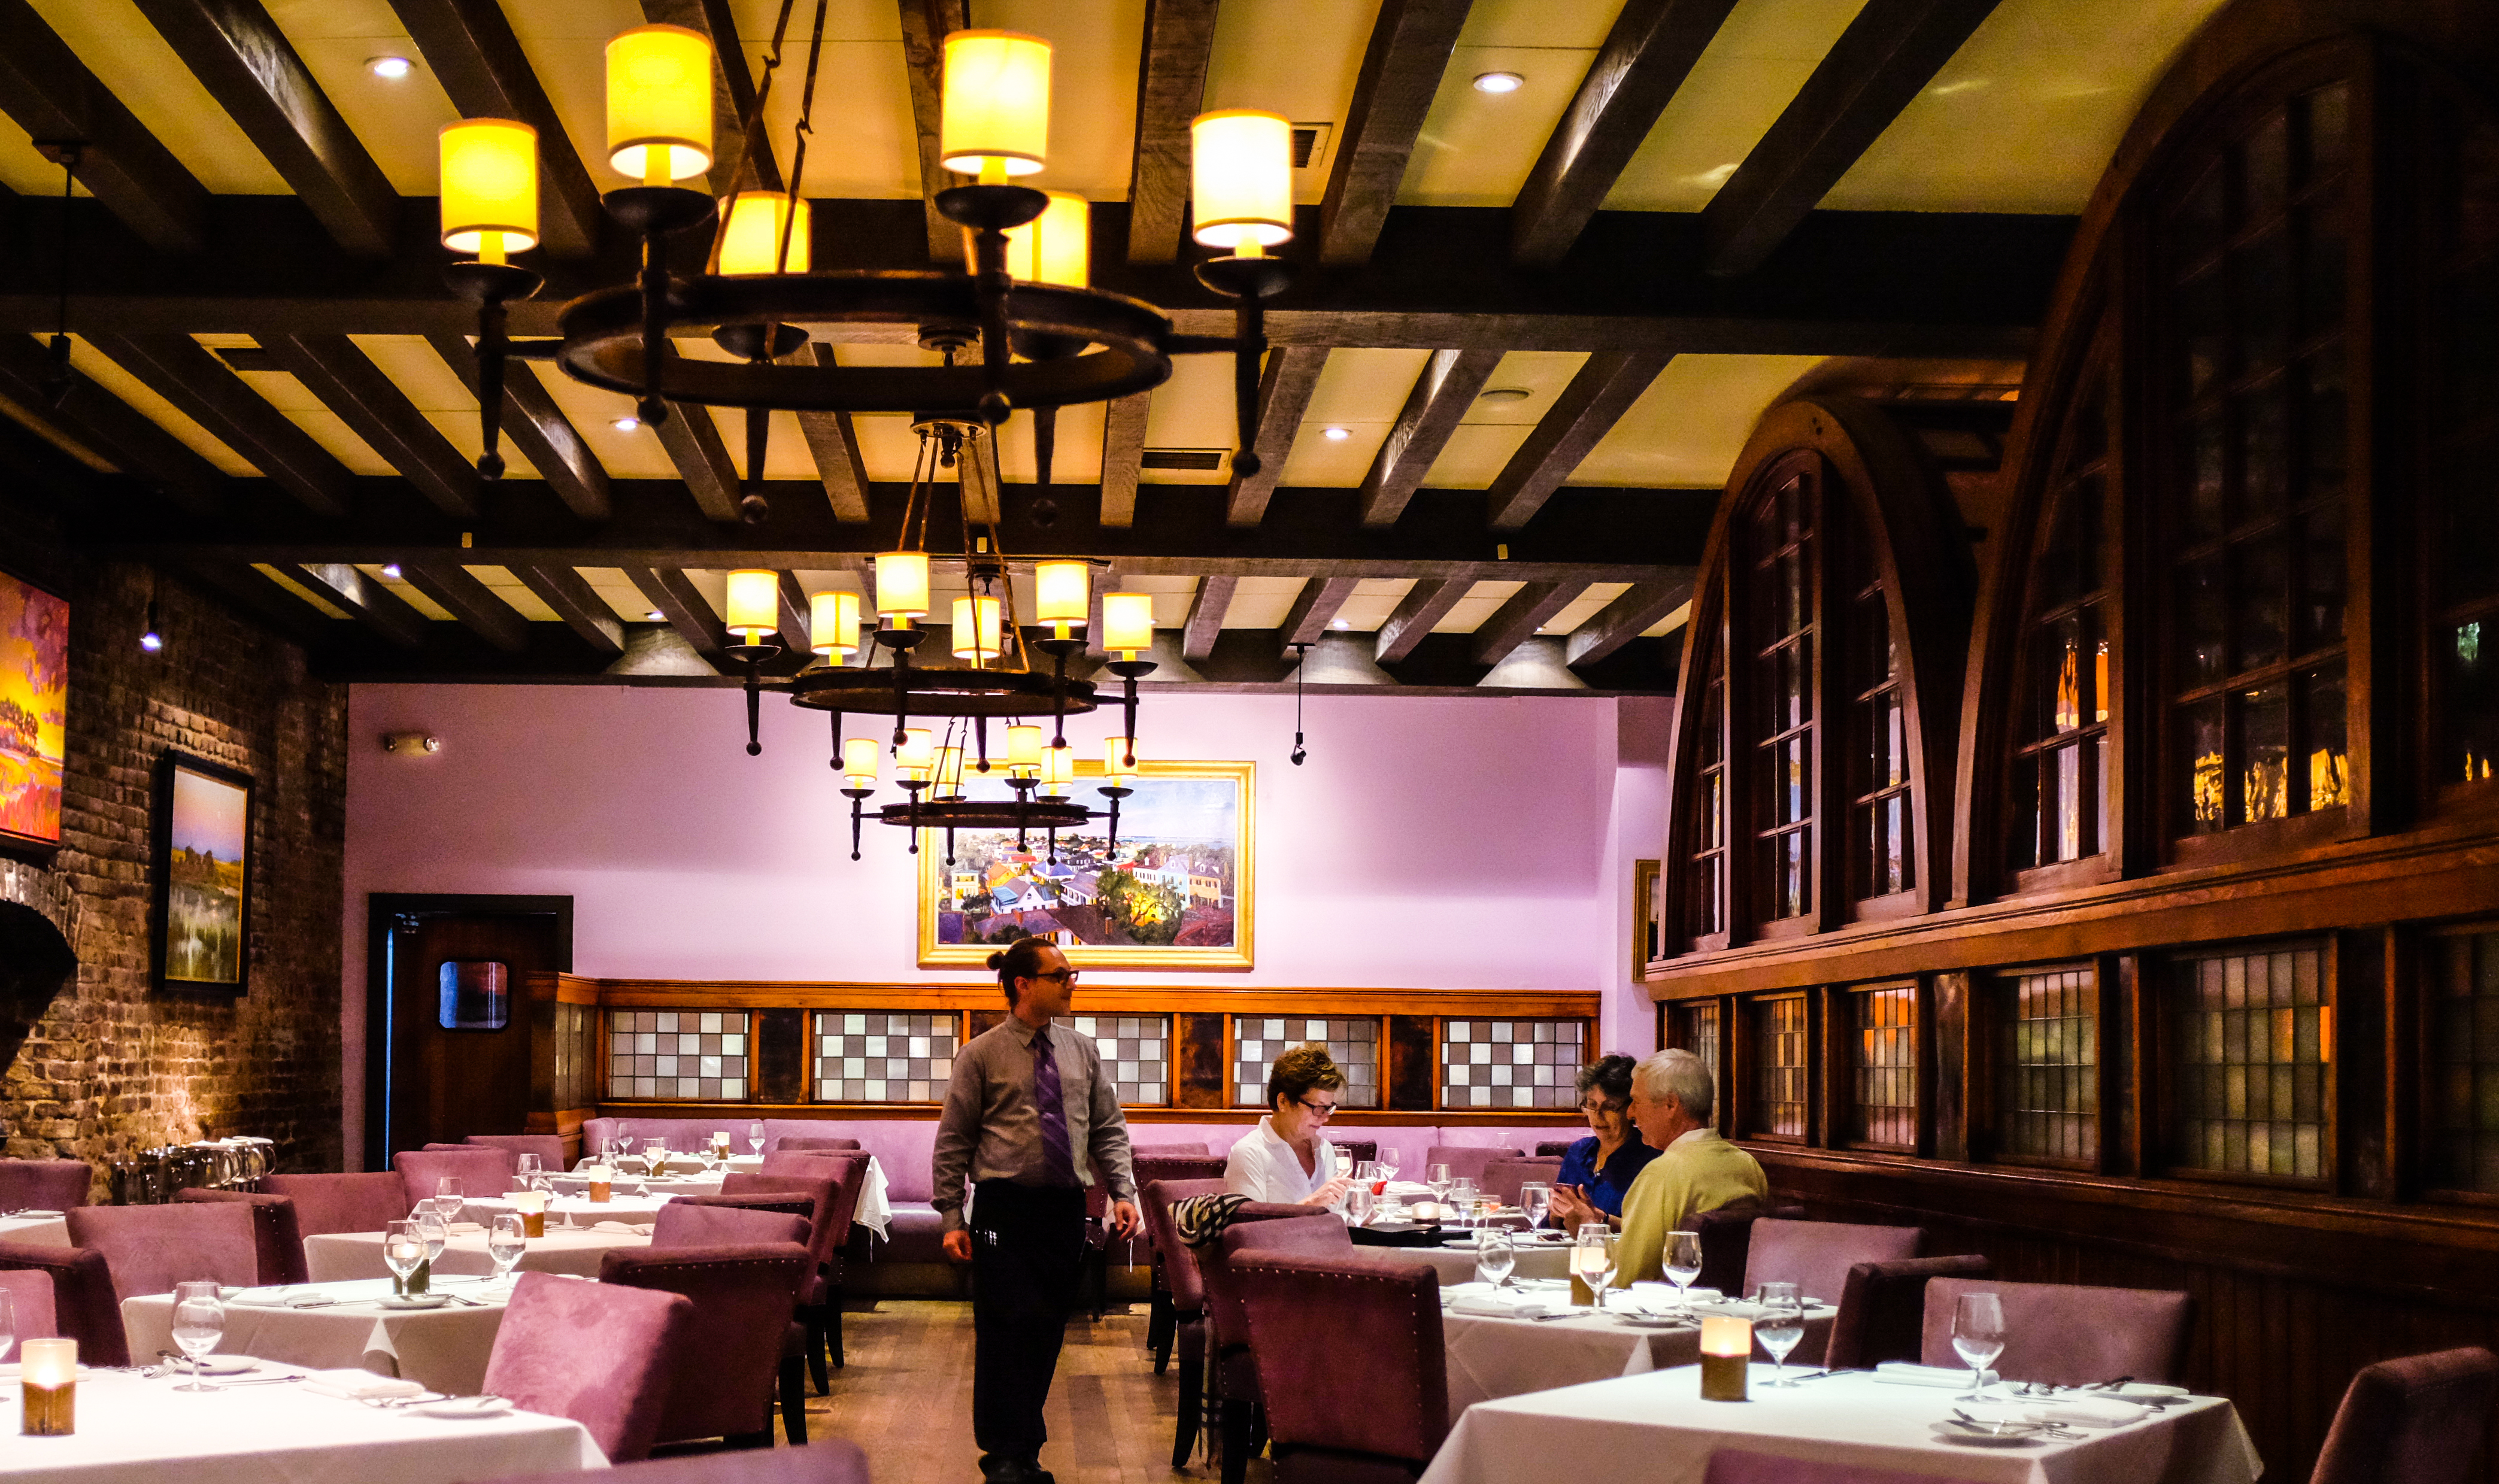 Happy hour is only available at the bar, but here's a photo of the dining room.